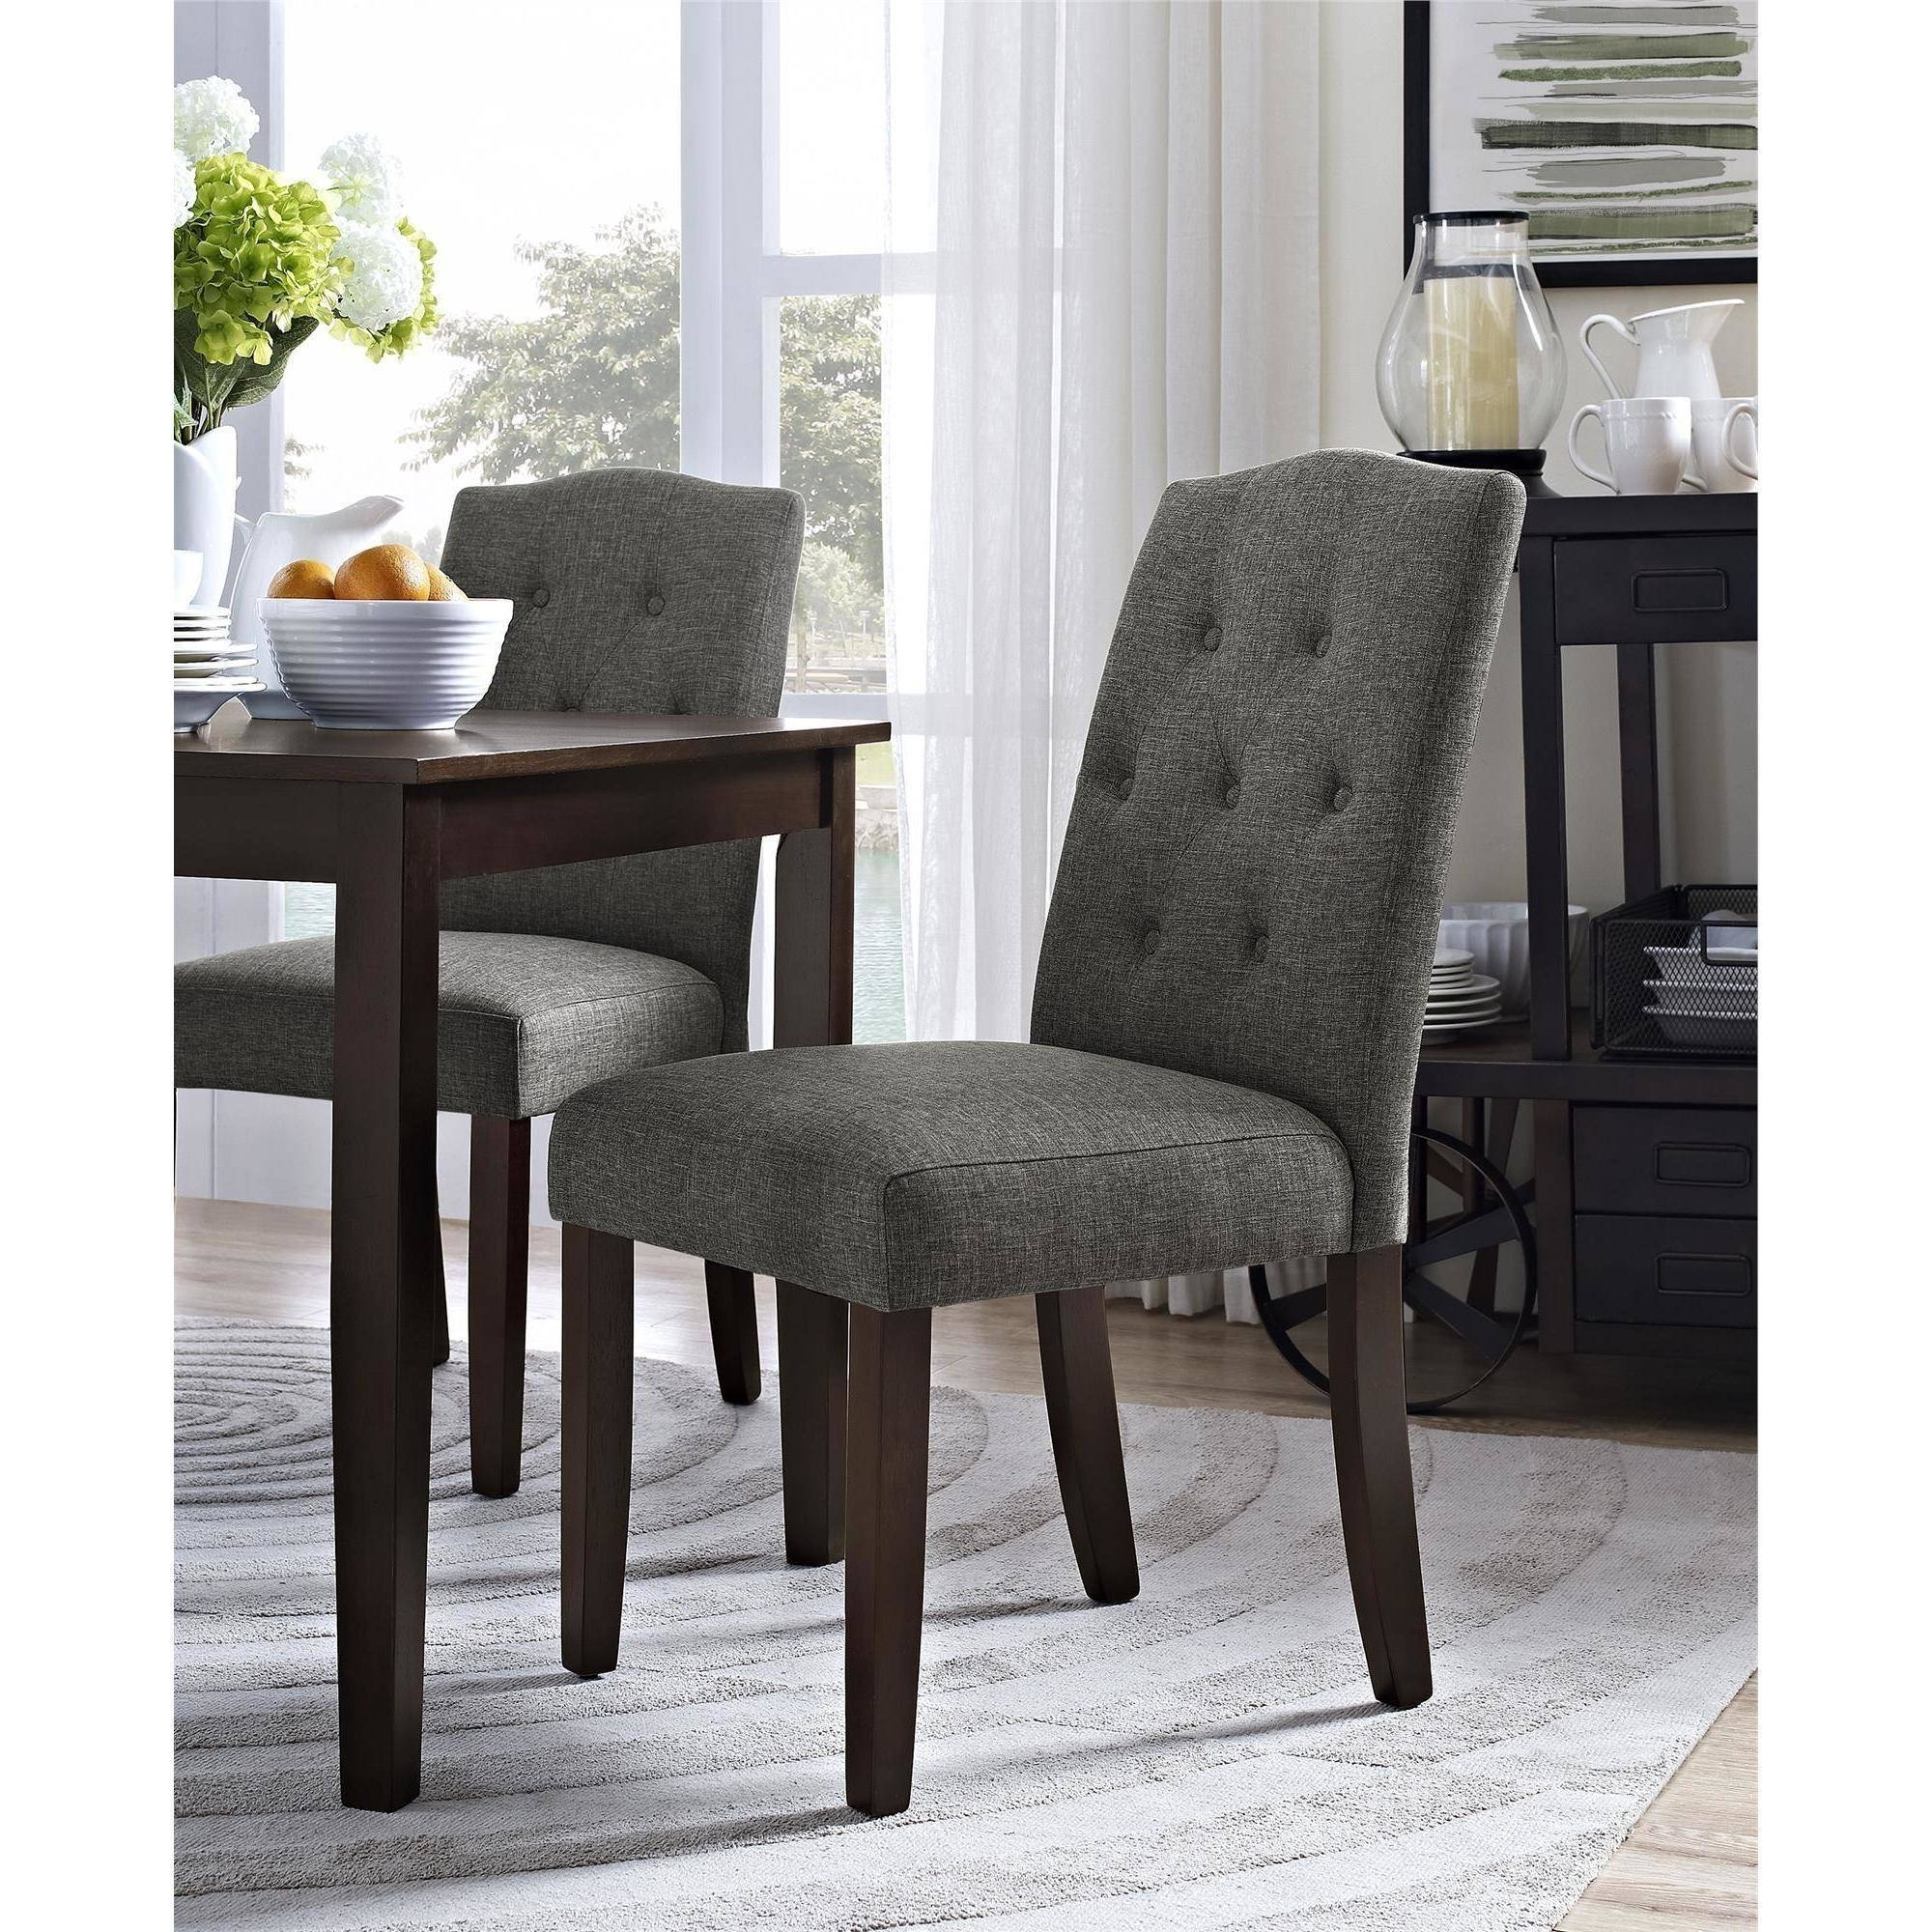 Dining Tables Grey Chairs For Most Recent Better Homes And Gardens Parsons Tufted Dining Chair, Multiple (Gallery 7 of 25)